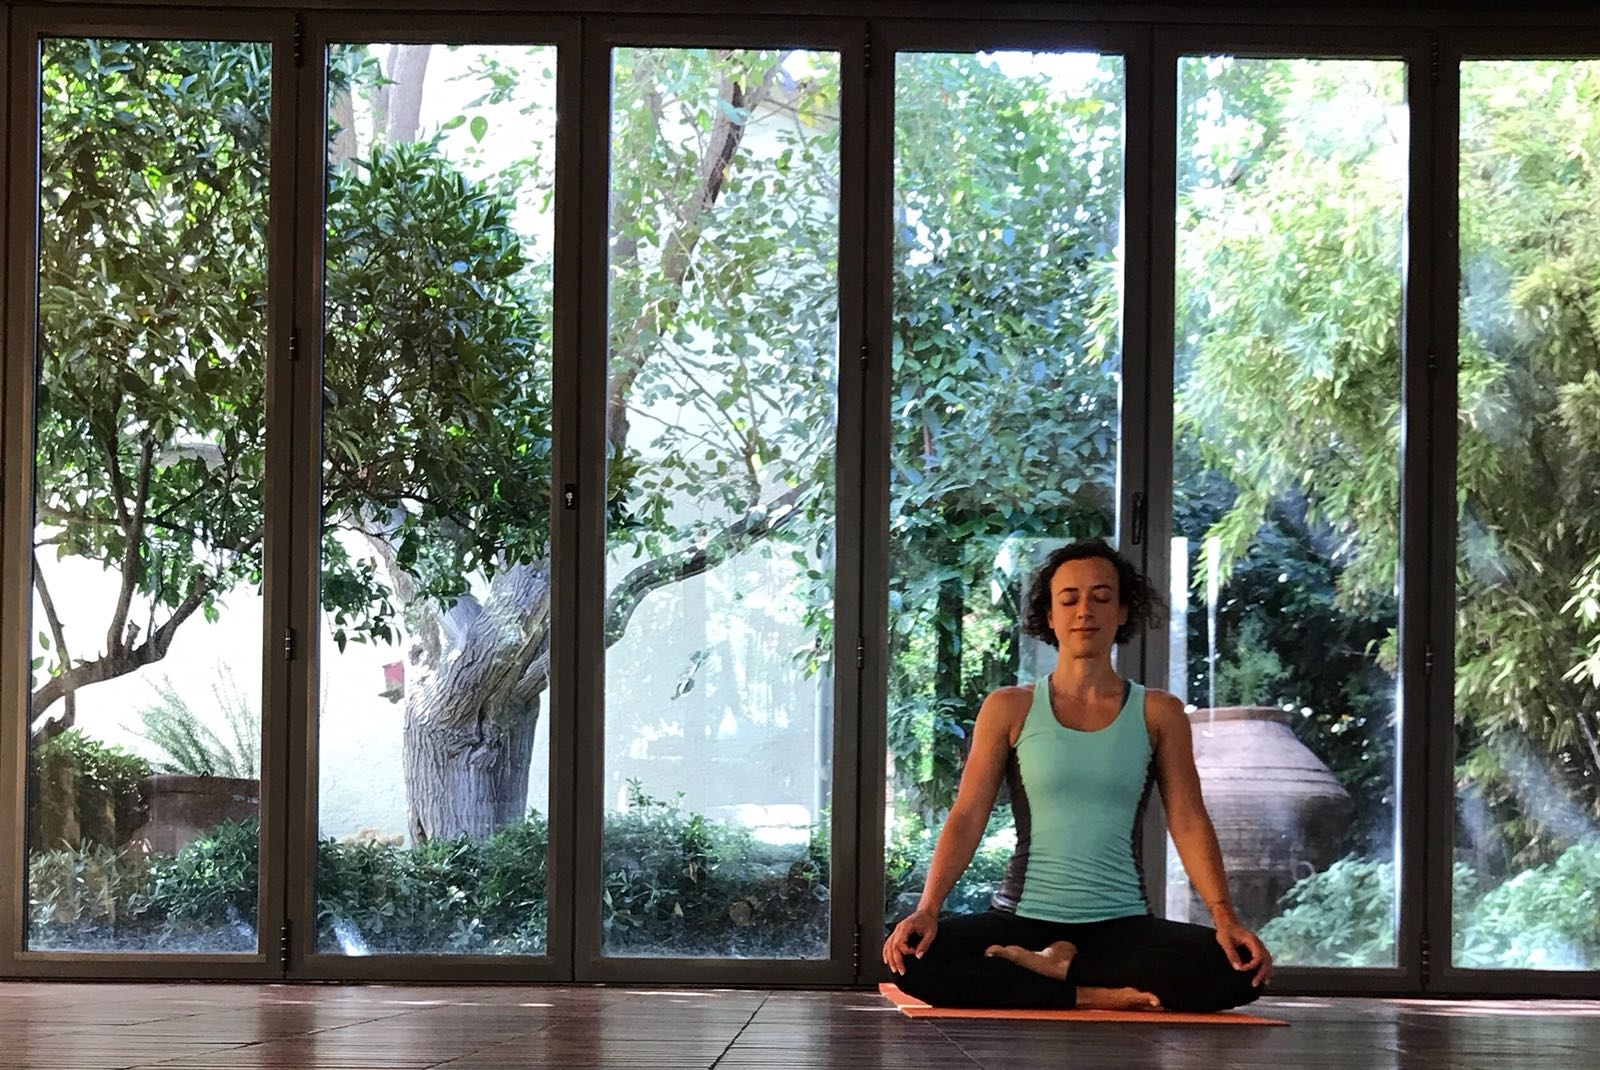 Yoga with Seda Musaoglu between 24-27 August